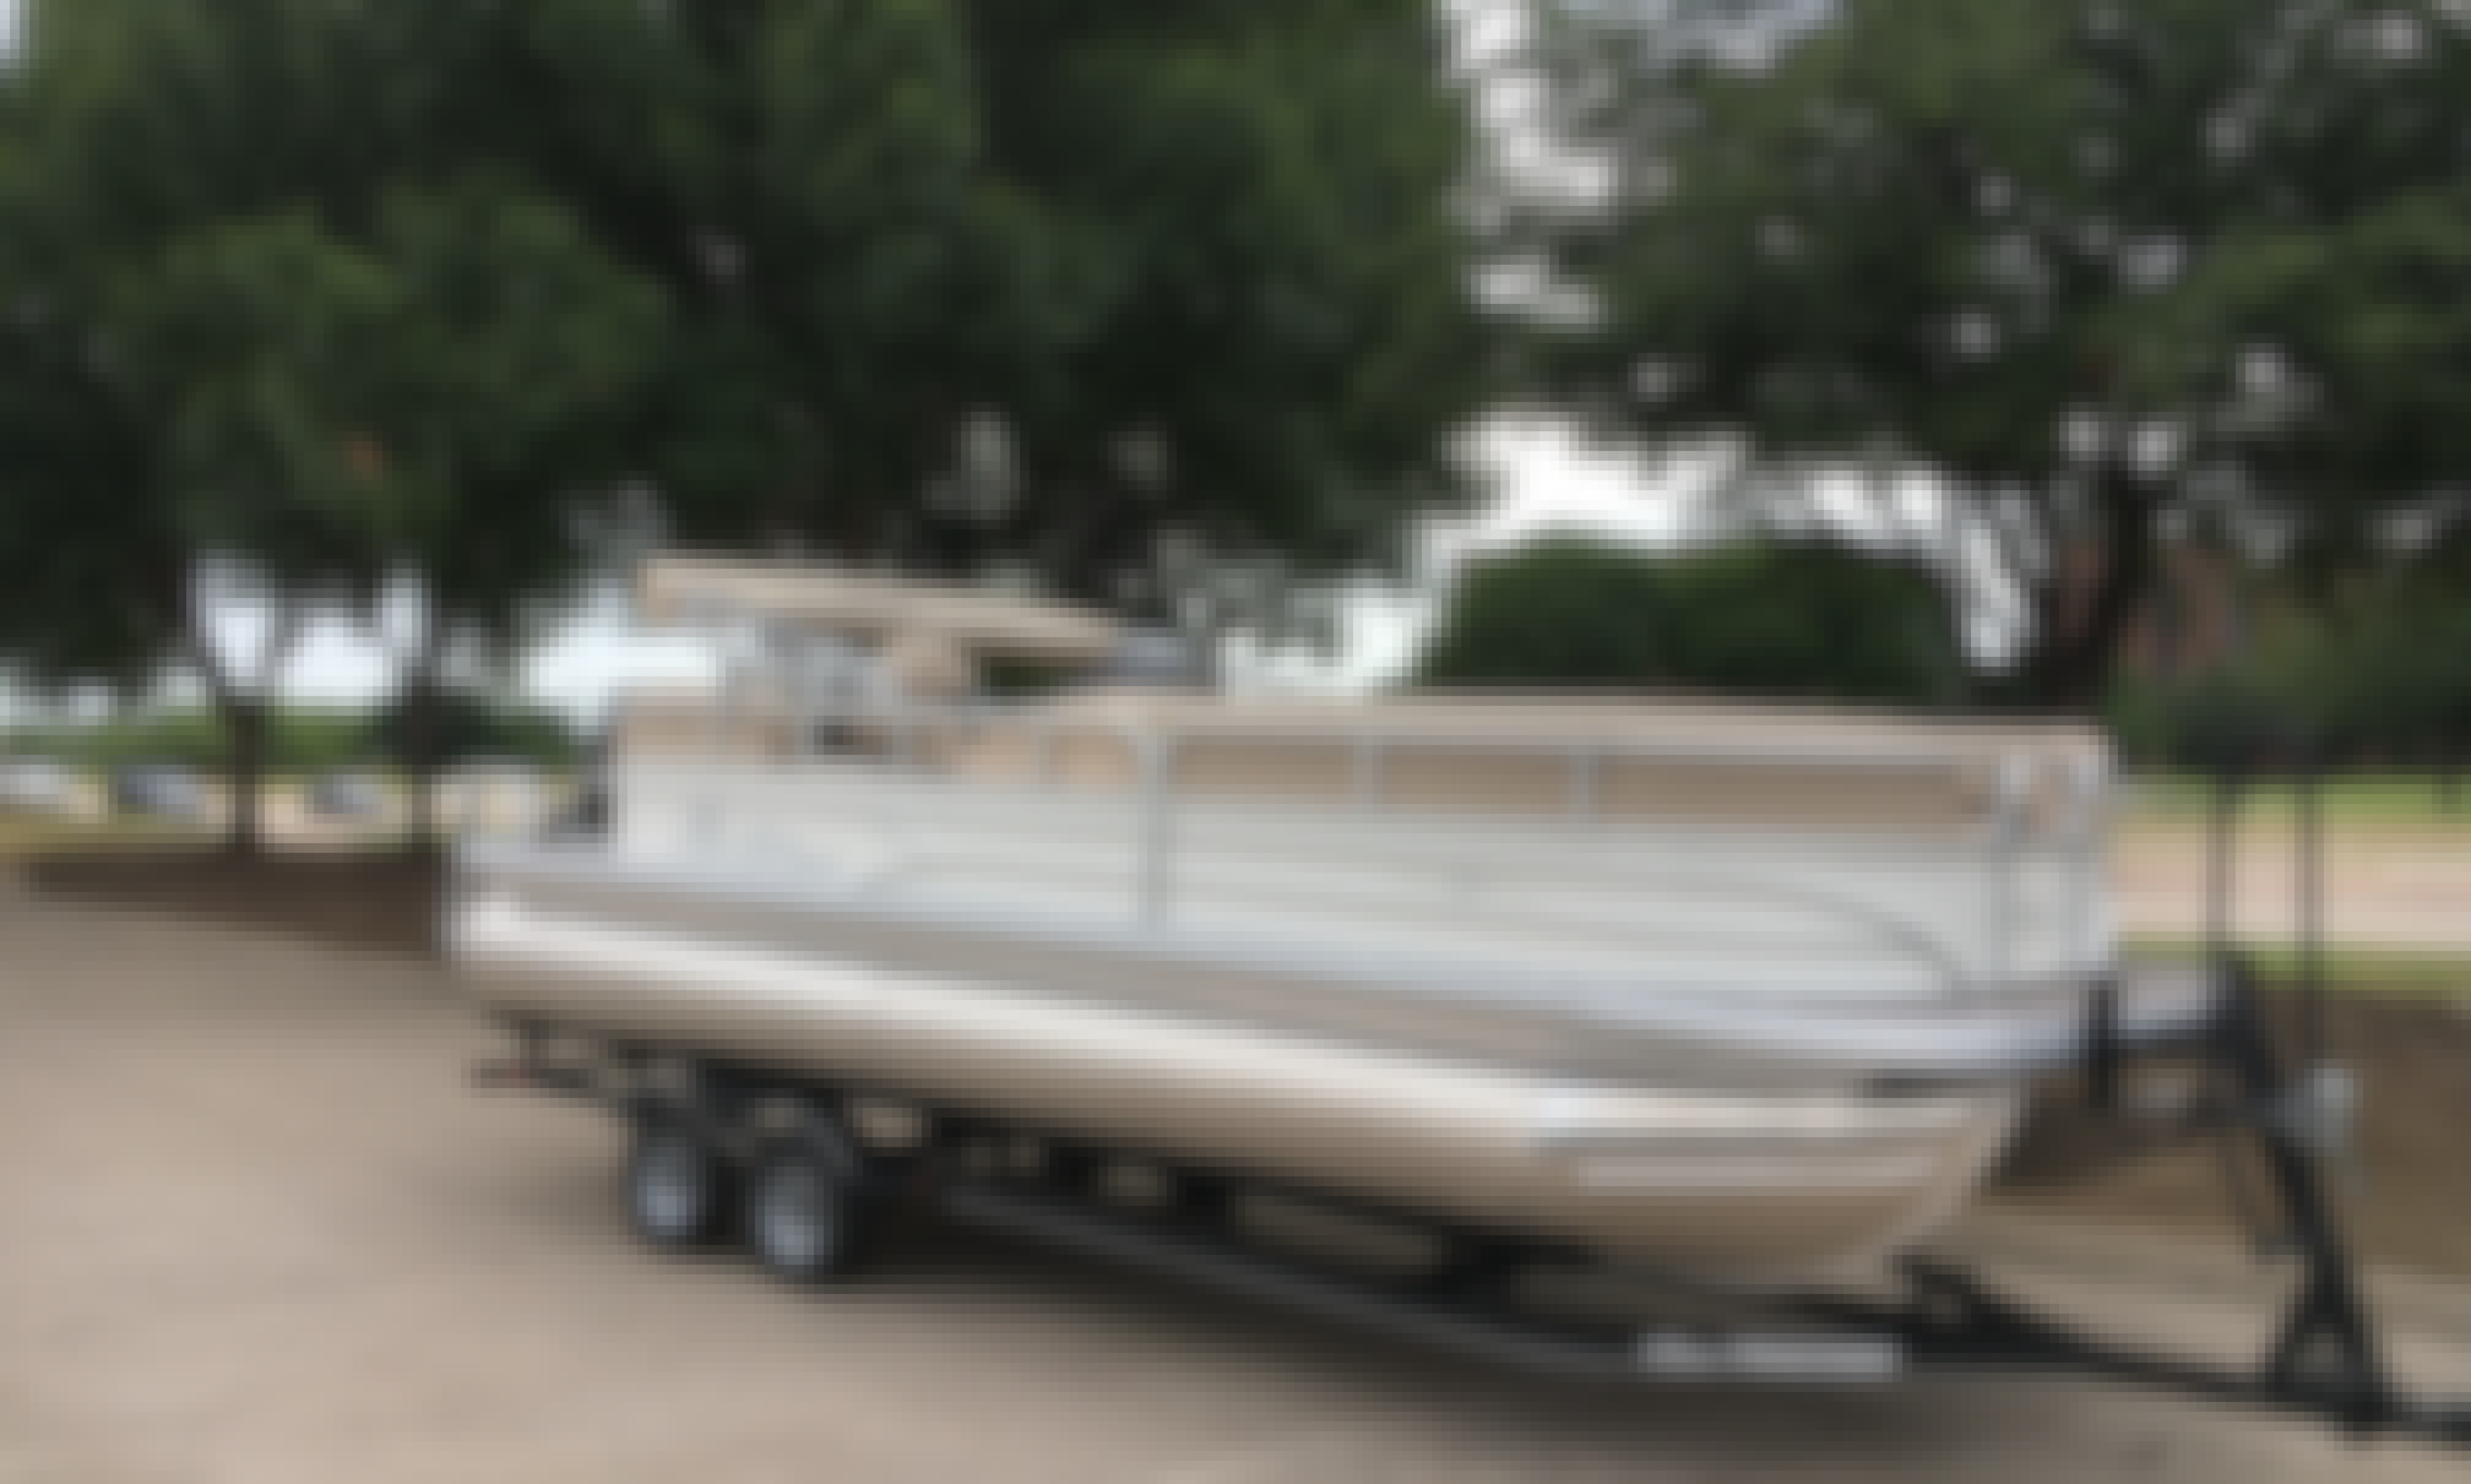 Charter this 22' Sun Tracker DLX Pontoon Boat on Lake Lewisville